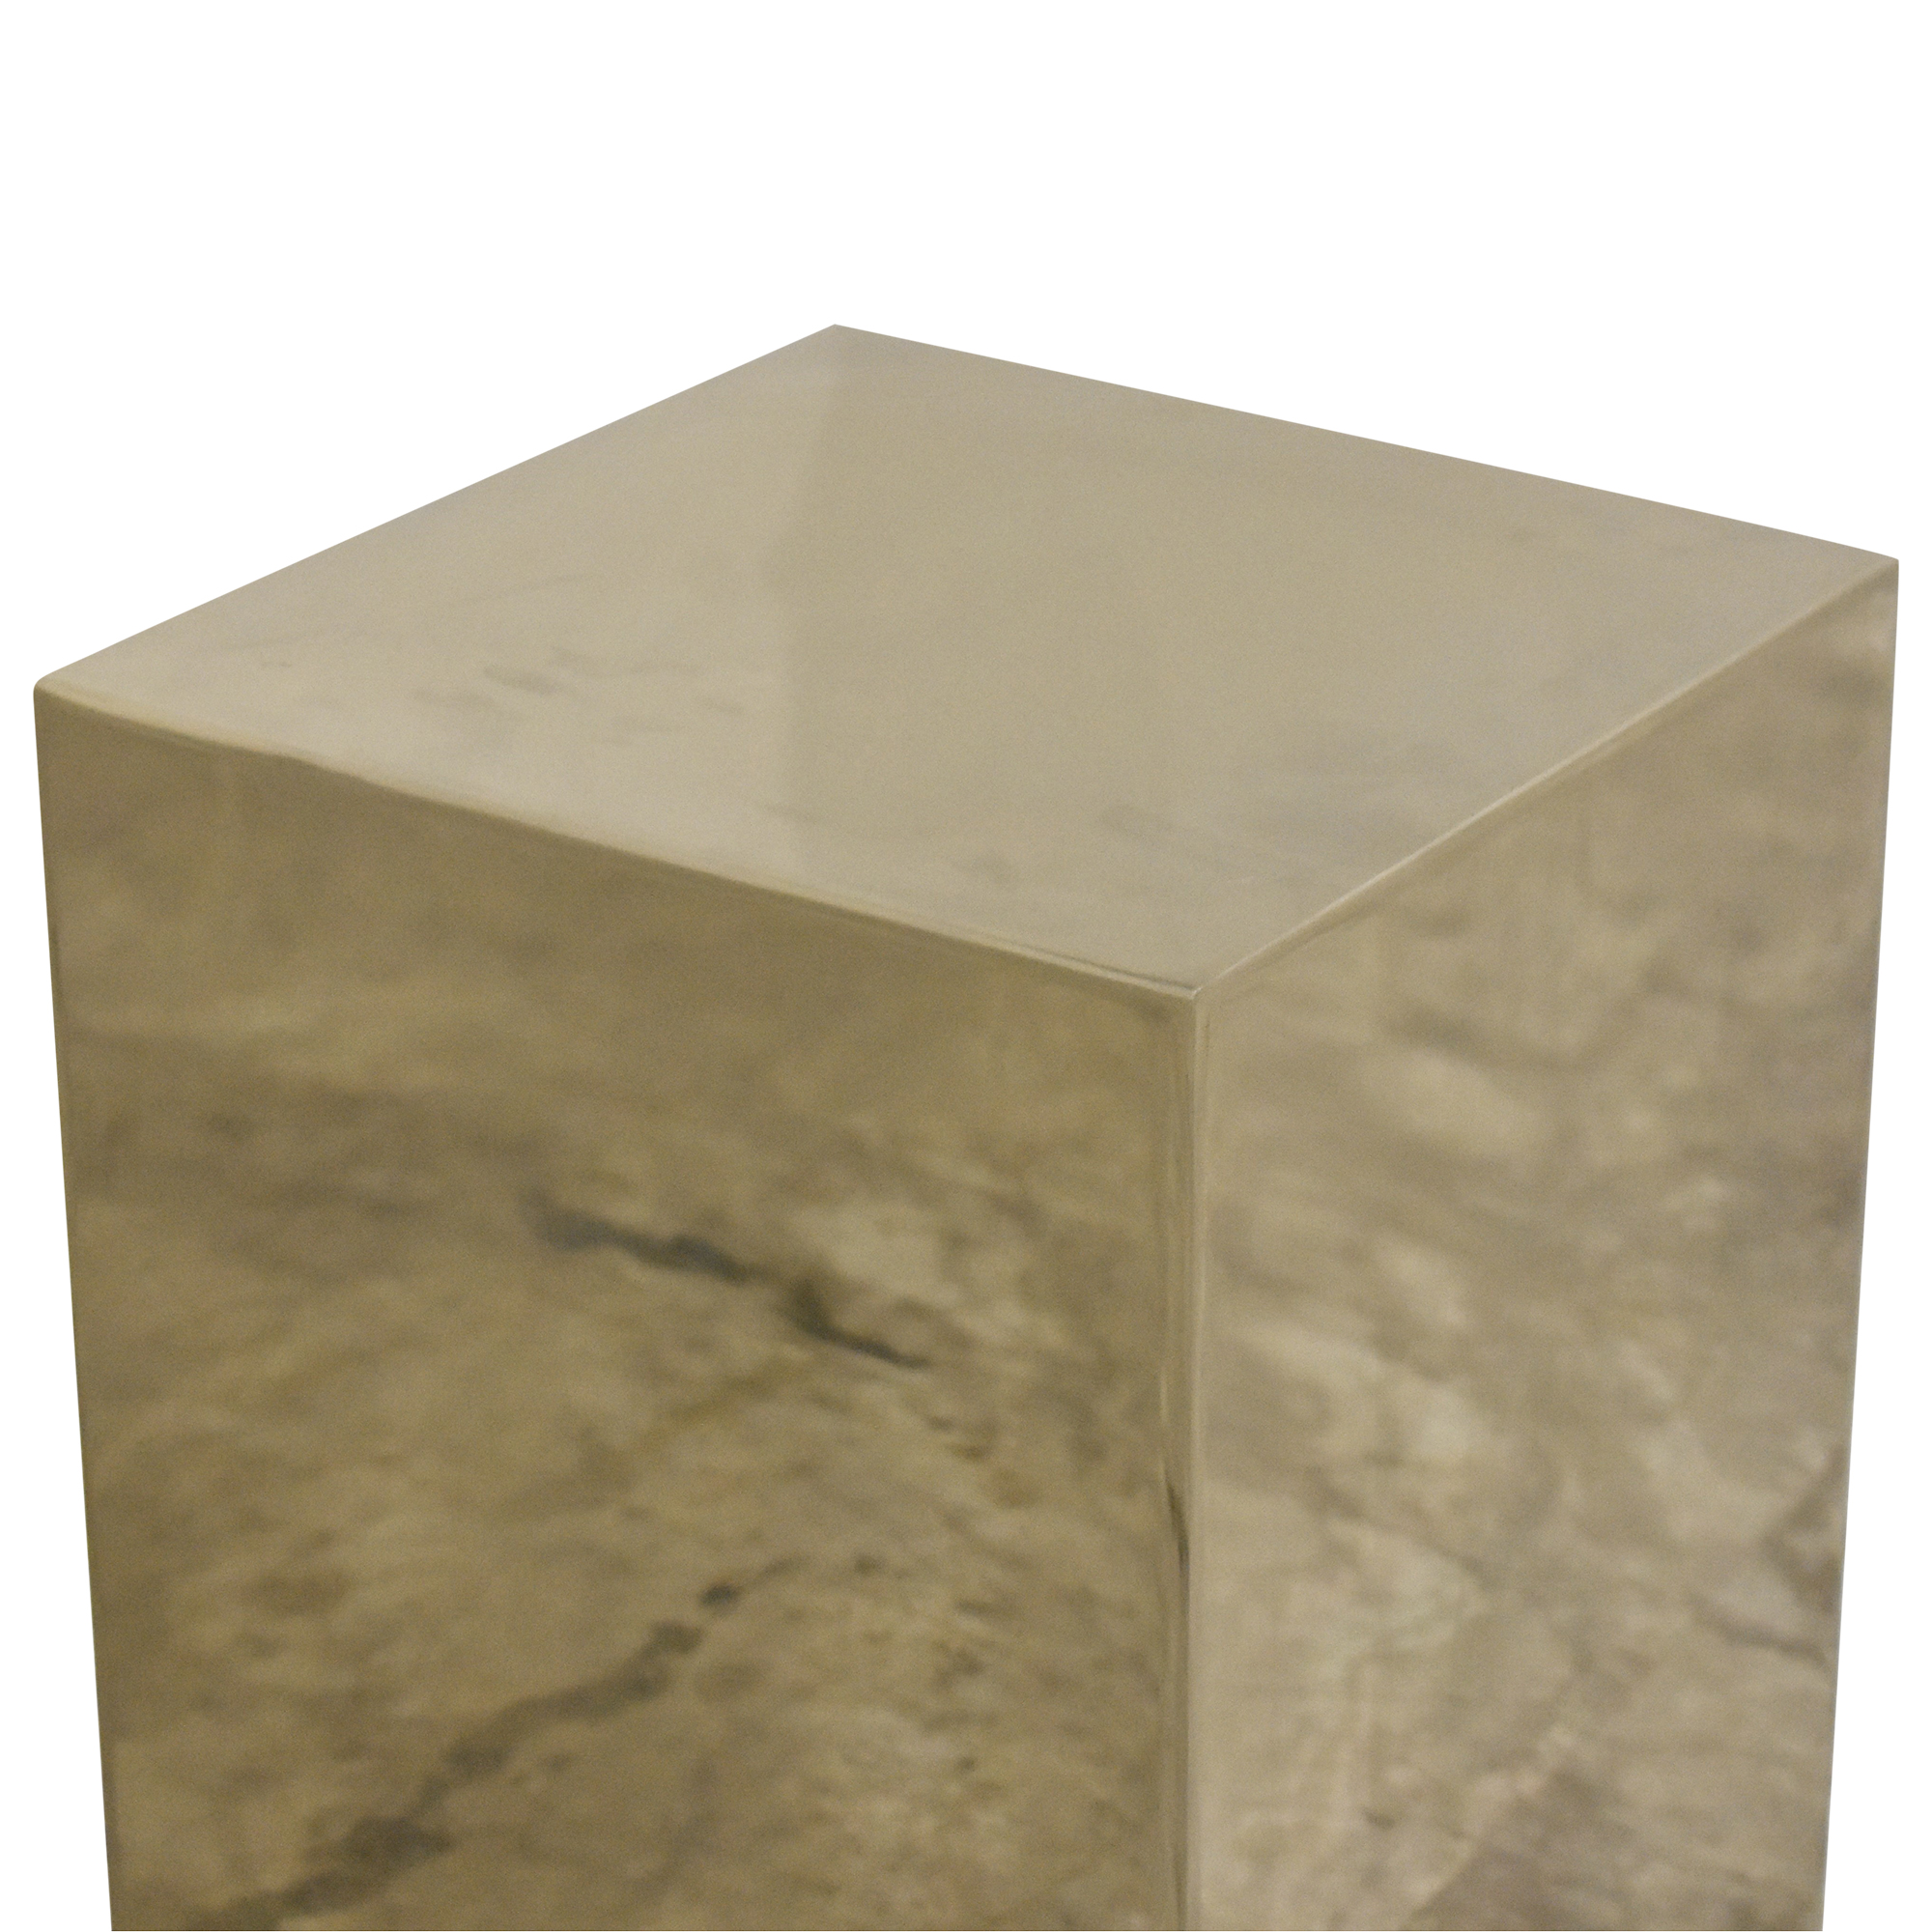 CB2 CB2 Cube Side Table on sale